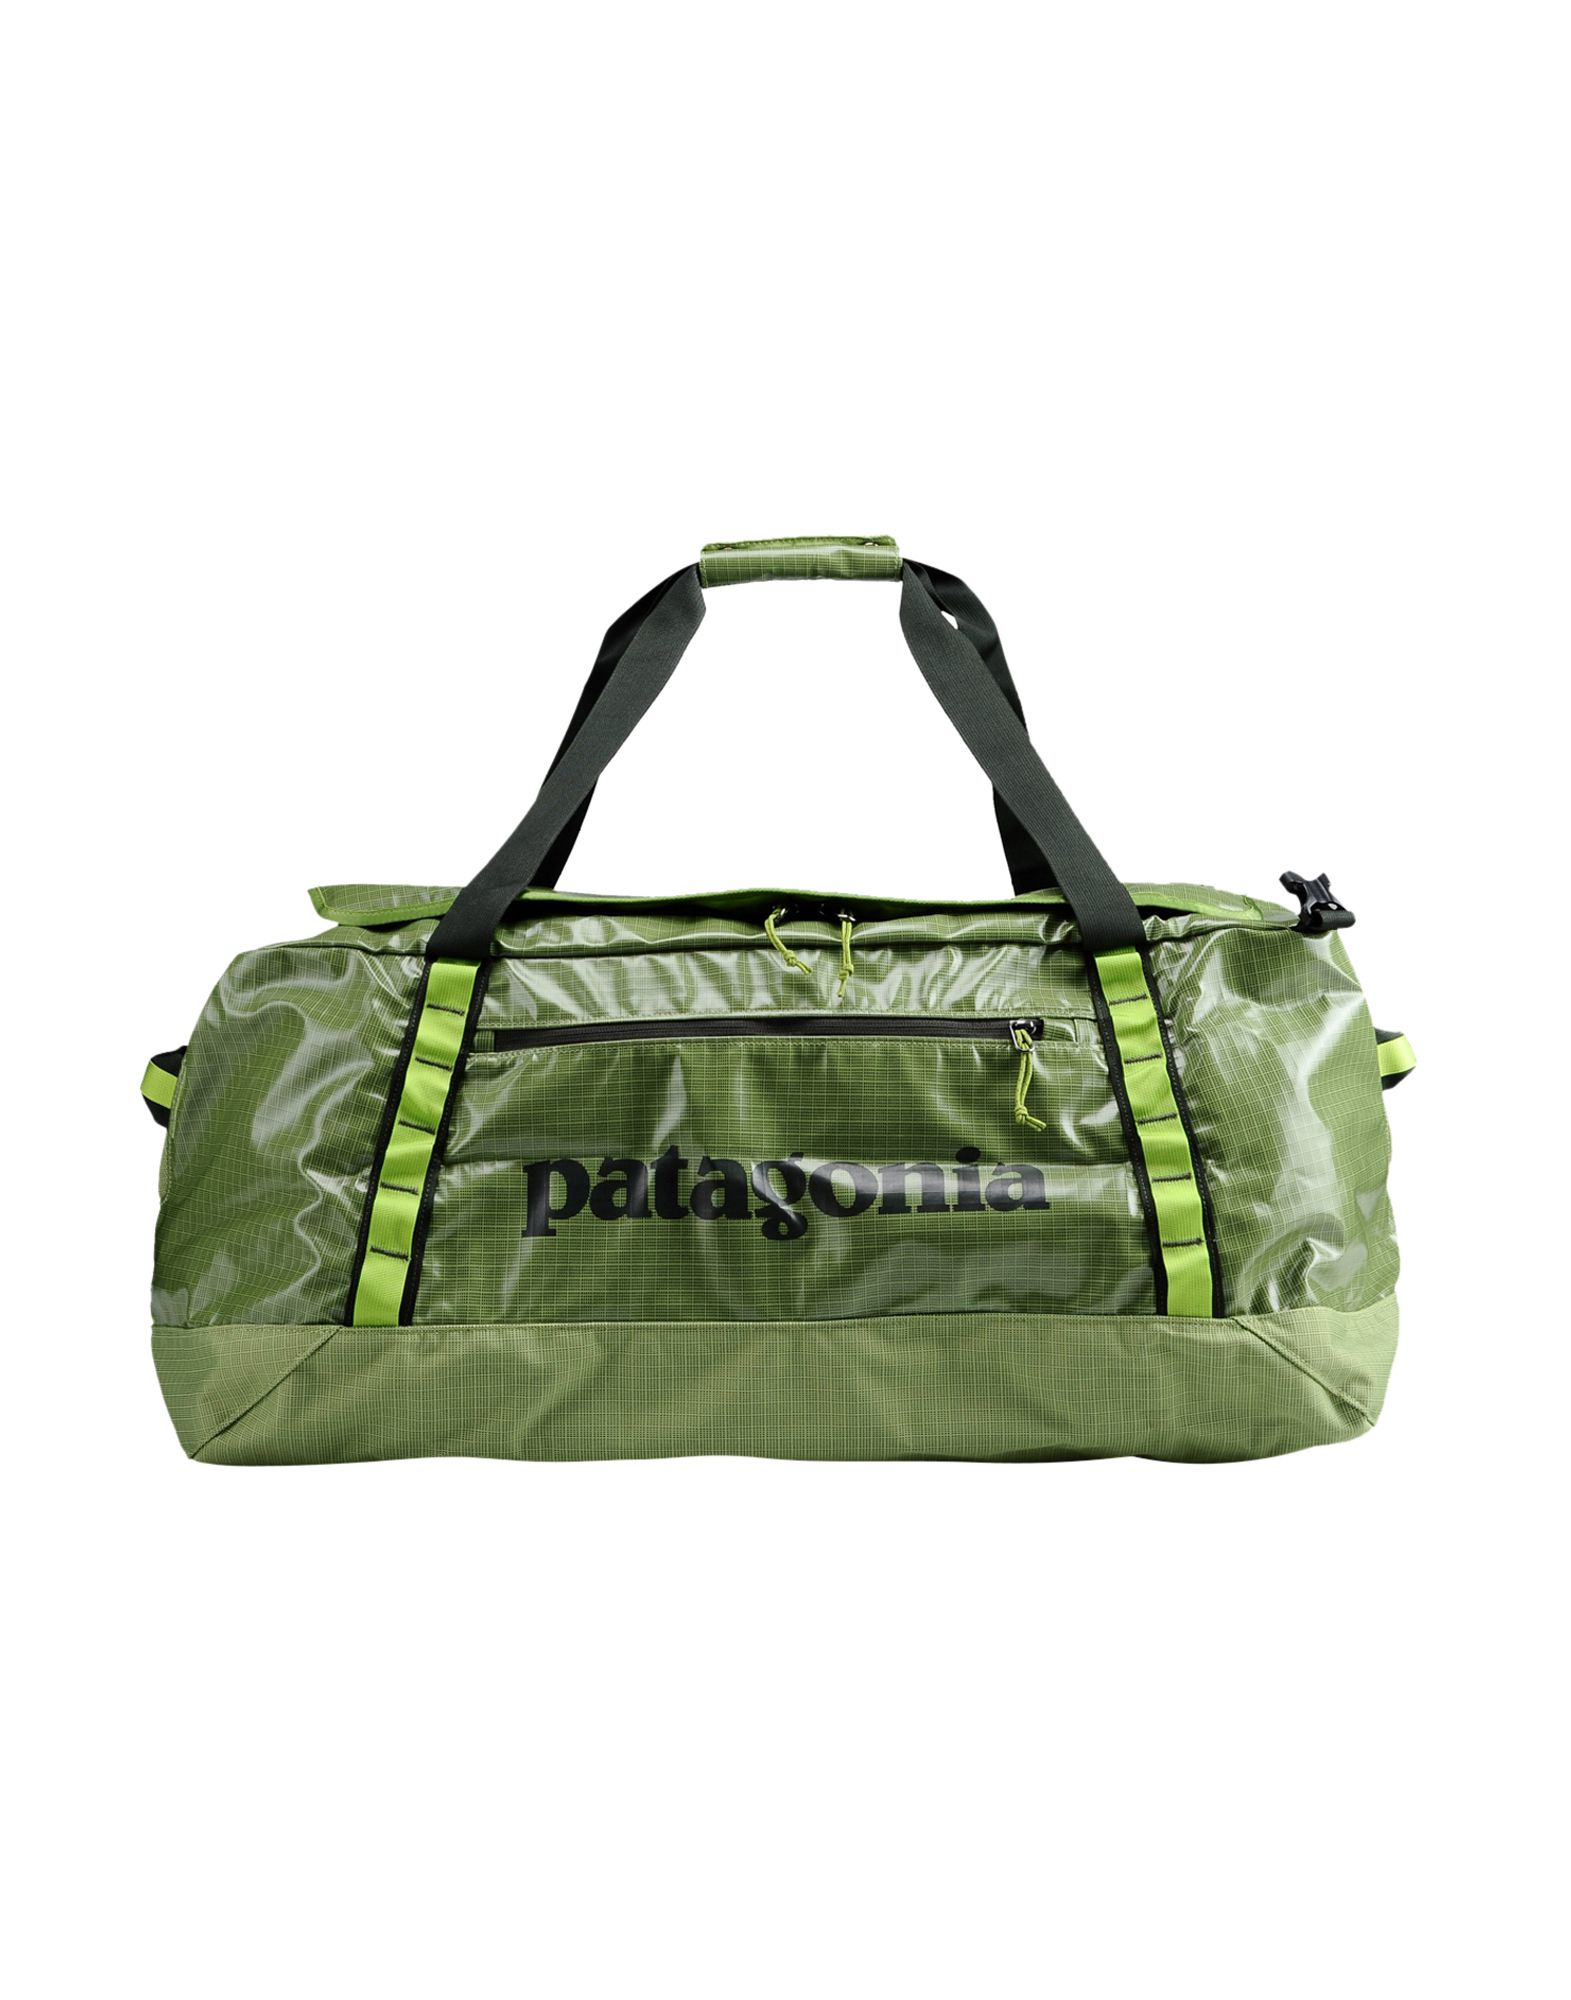 39d695538a Lyst - Patagonia Luggage in Green for Men